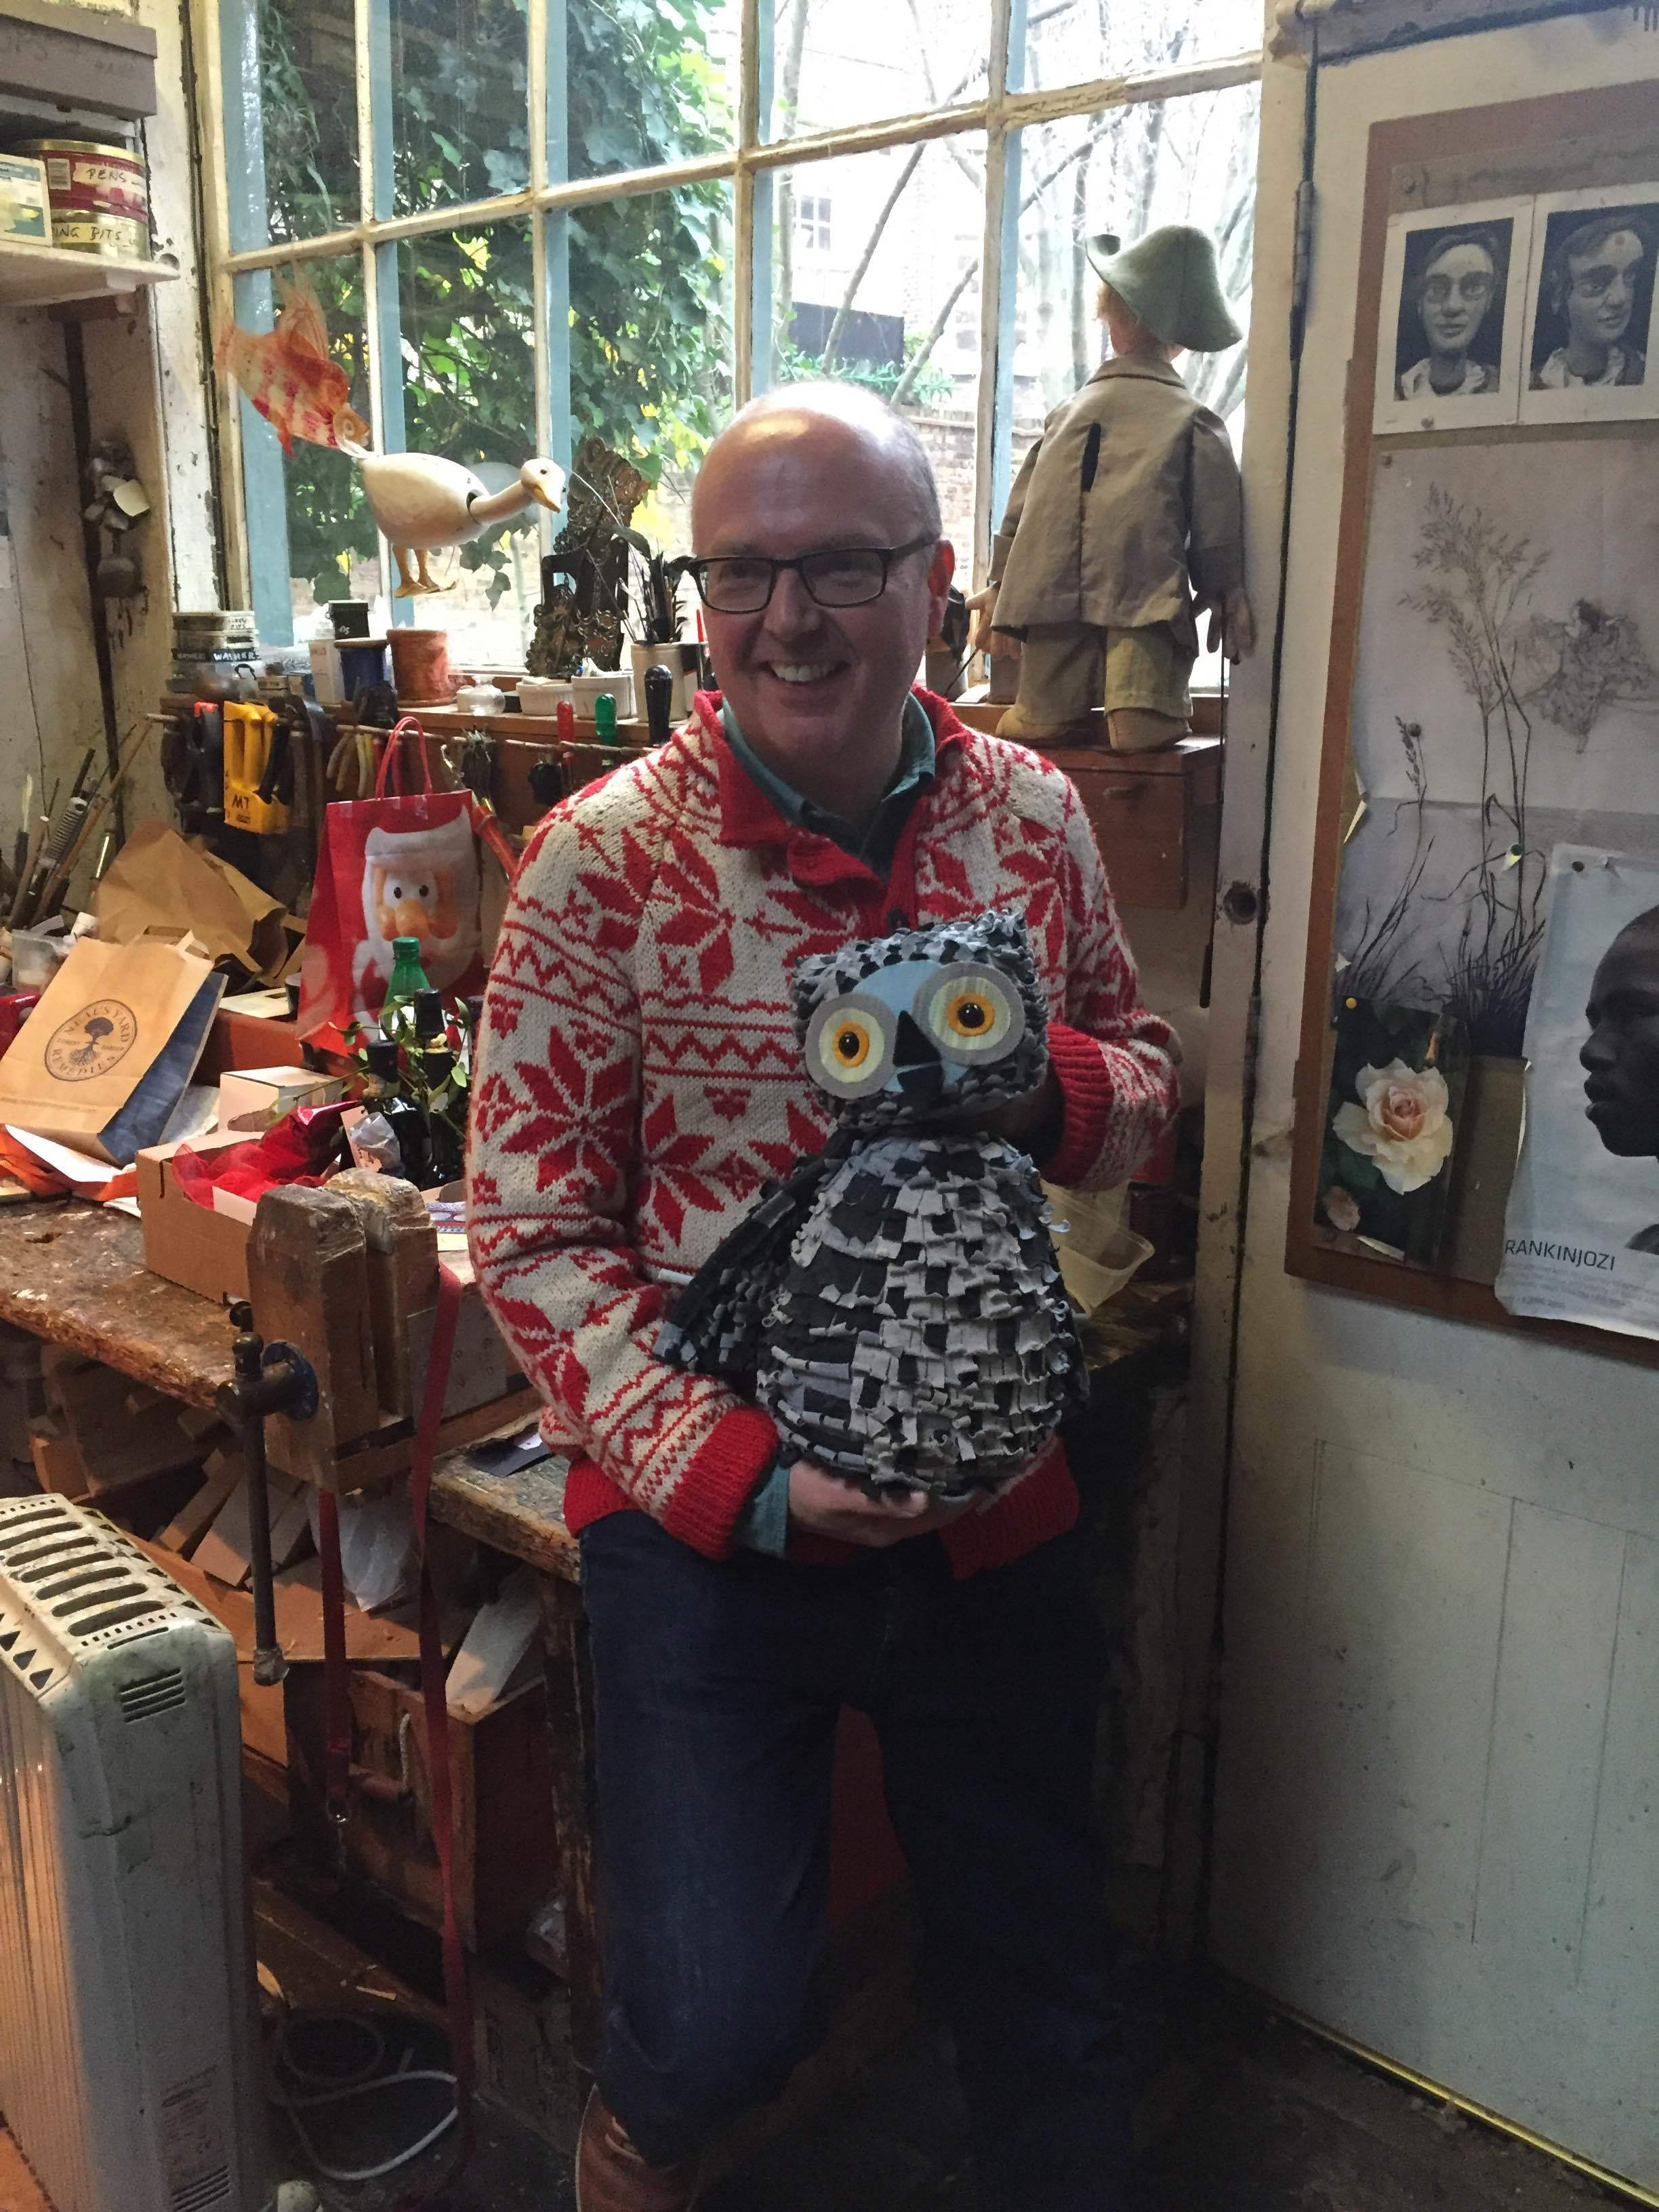 In The Little Angel Theatre workshop in December 2015 with one of the Wow! Said The Owl puppets created by Keith Frederick.